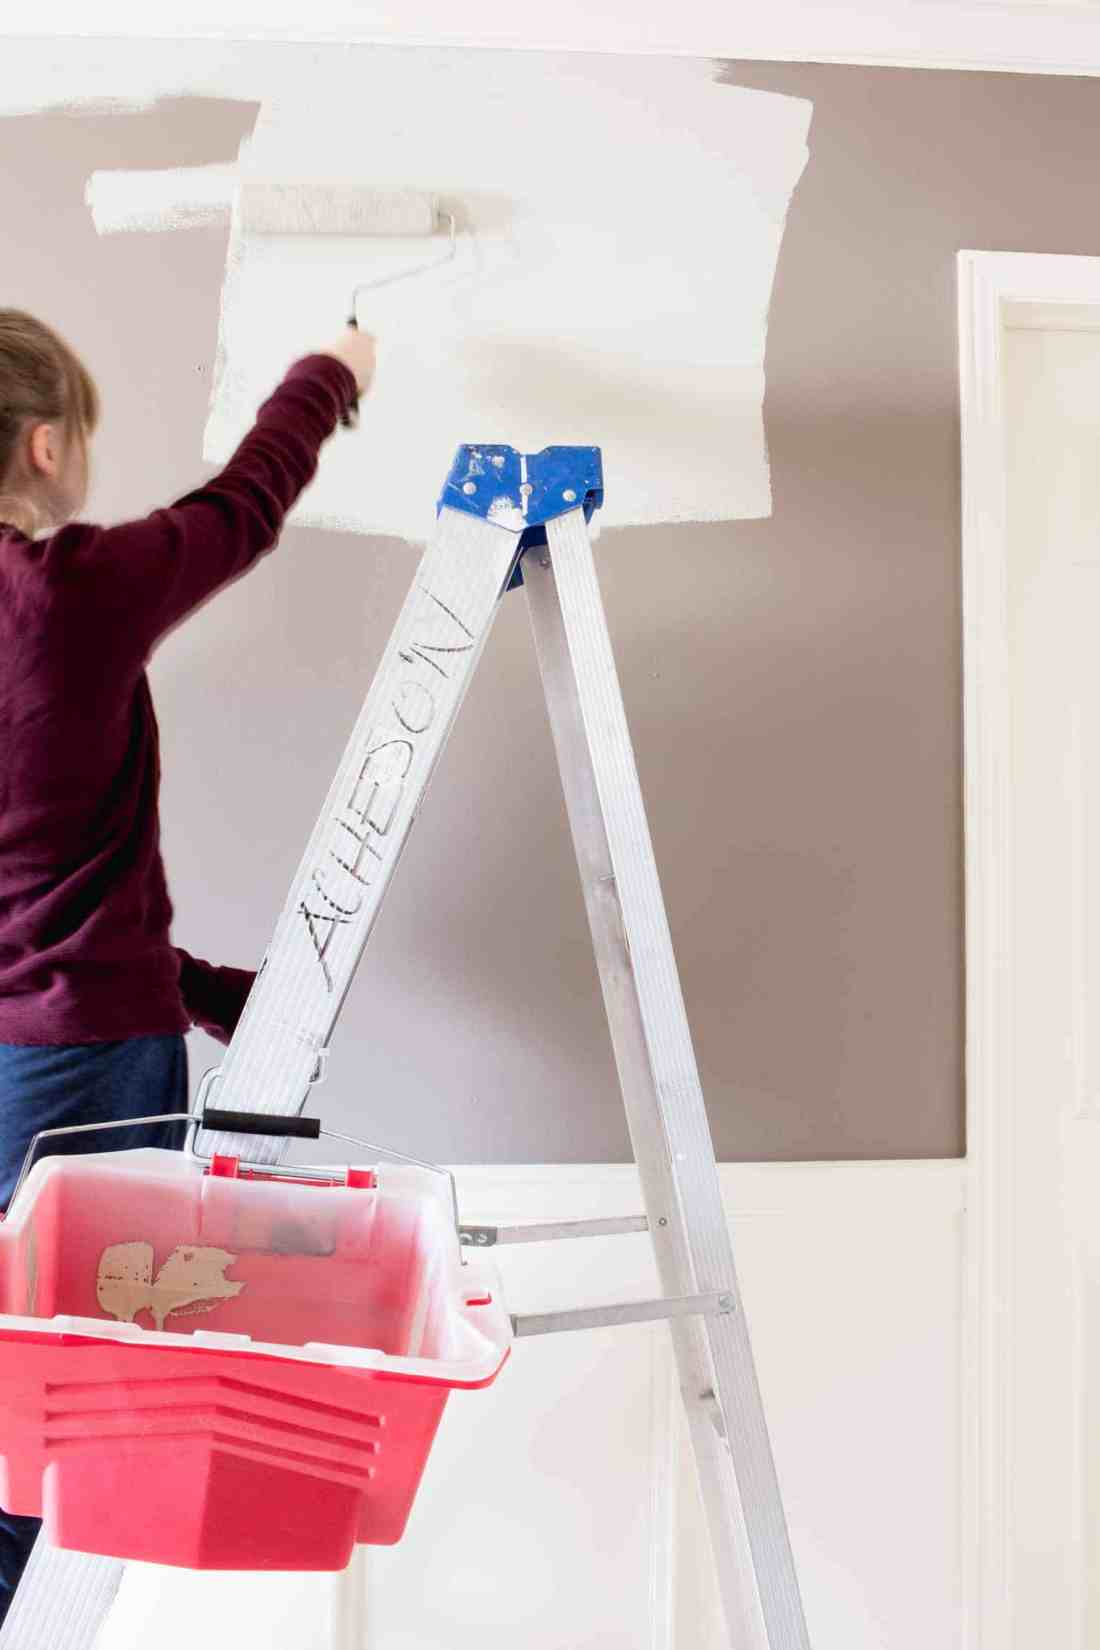 Teenager on ladder painting the wall